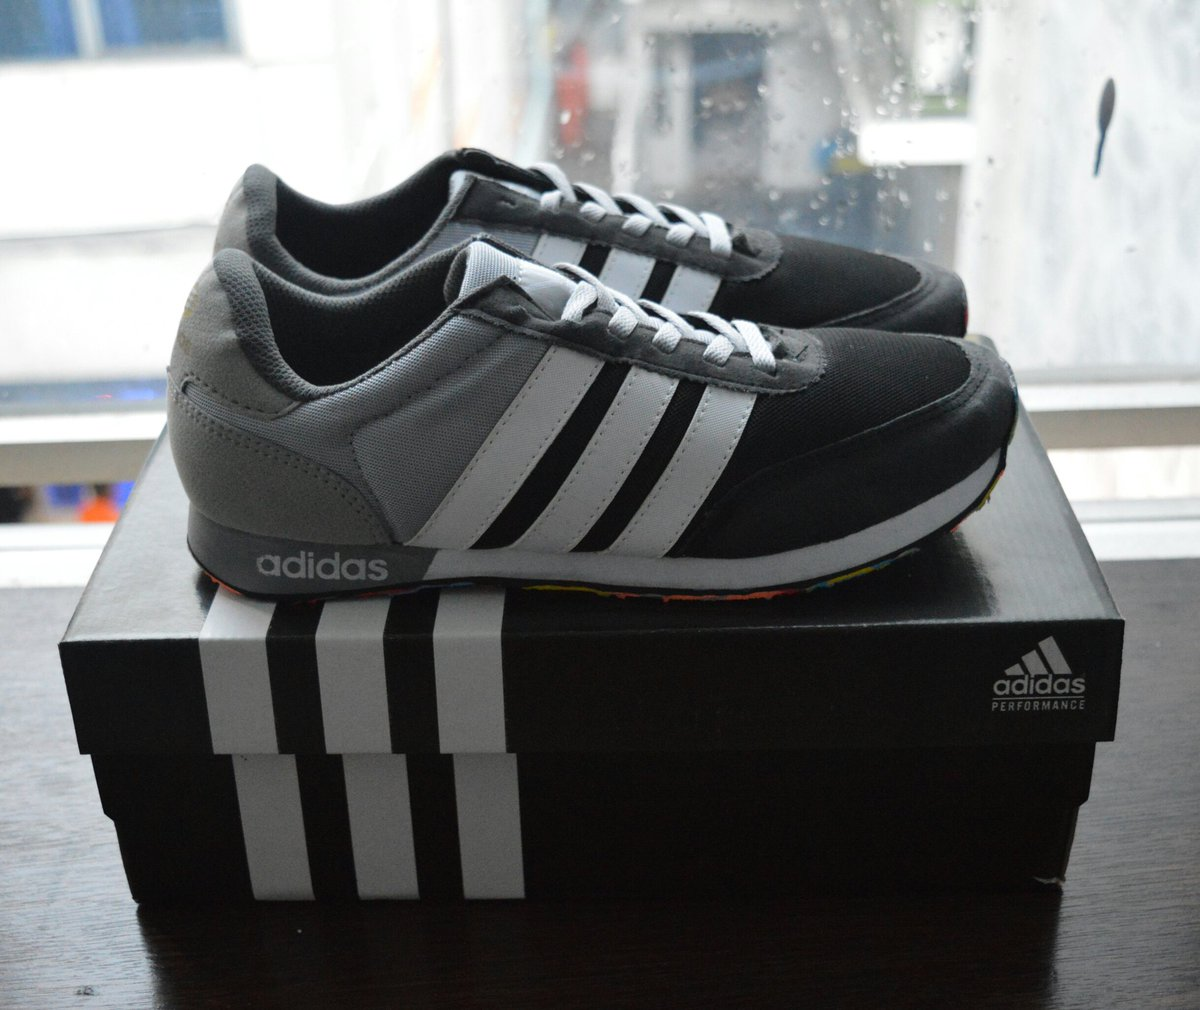 ... coupon code for adidas neo laser v di kickerstore promo 260rb bb  28f54197 line kickerstore wa f398200795